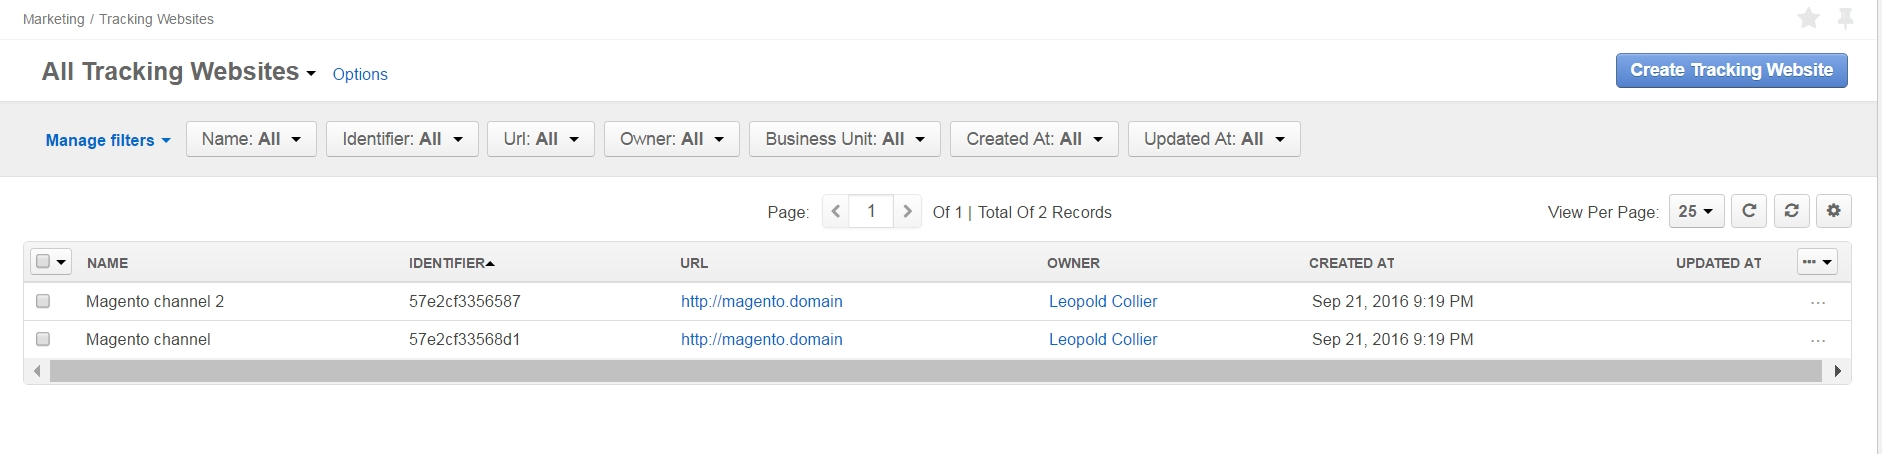 A list of previously created Magento channel records